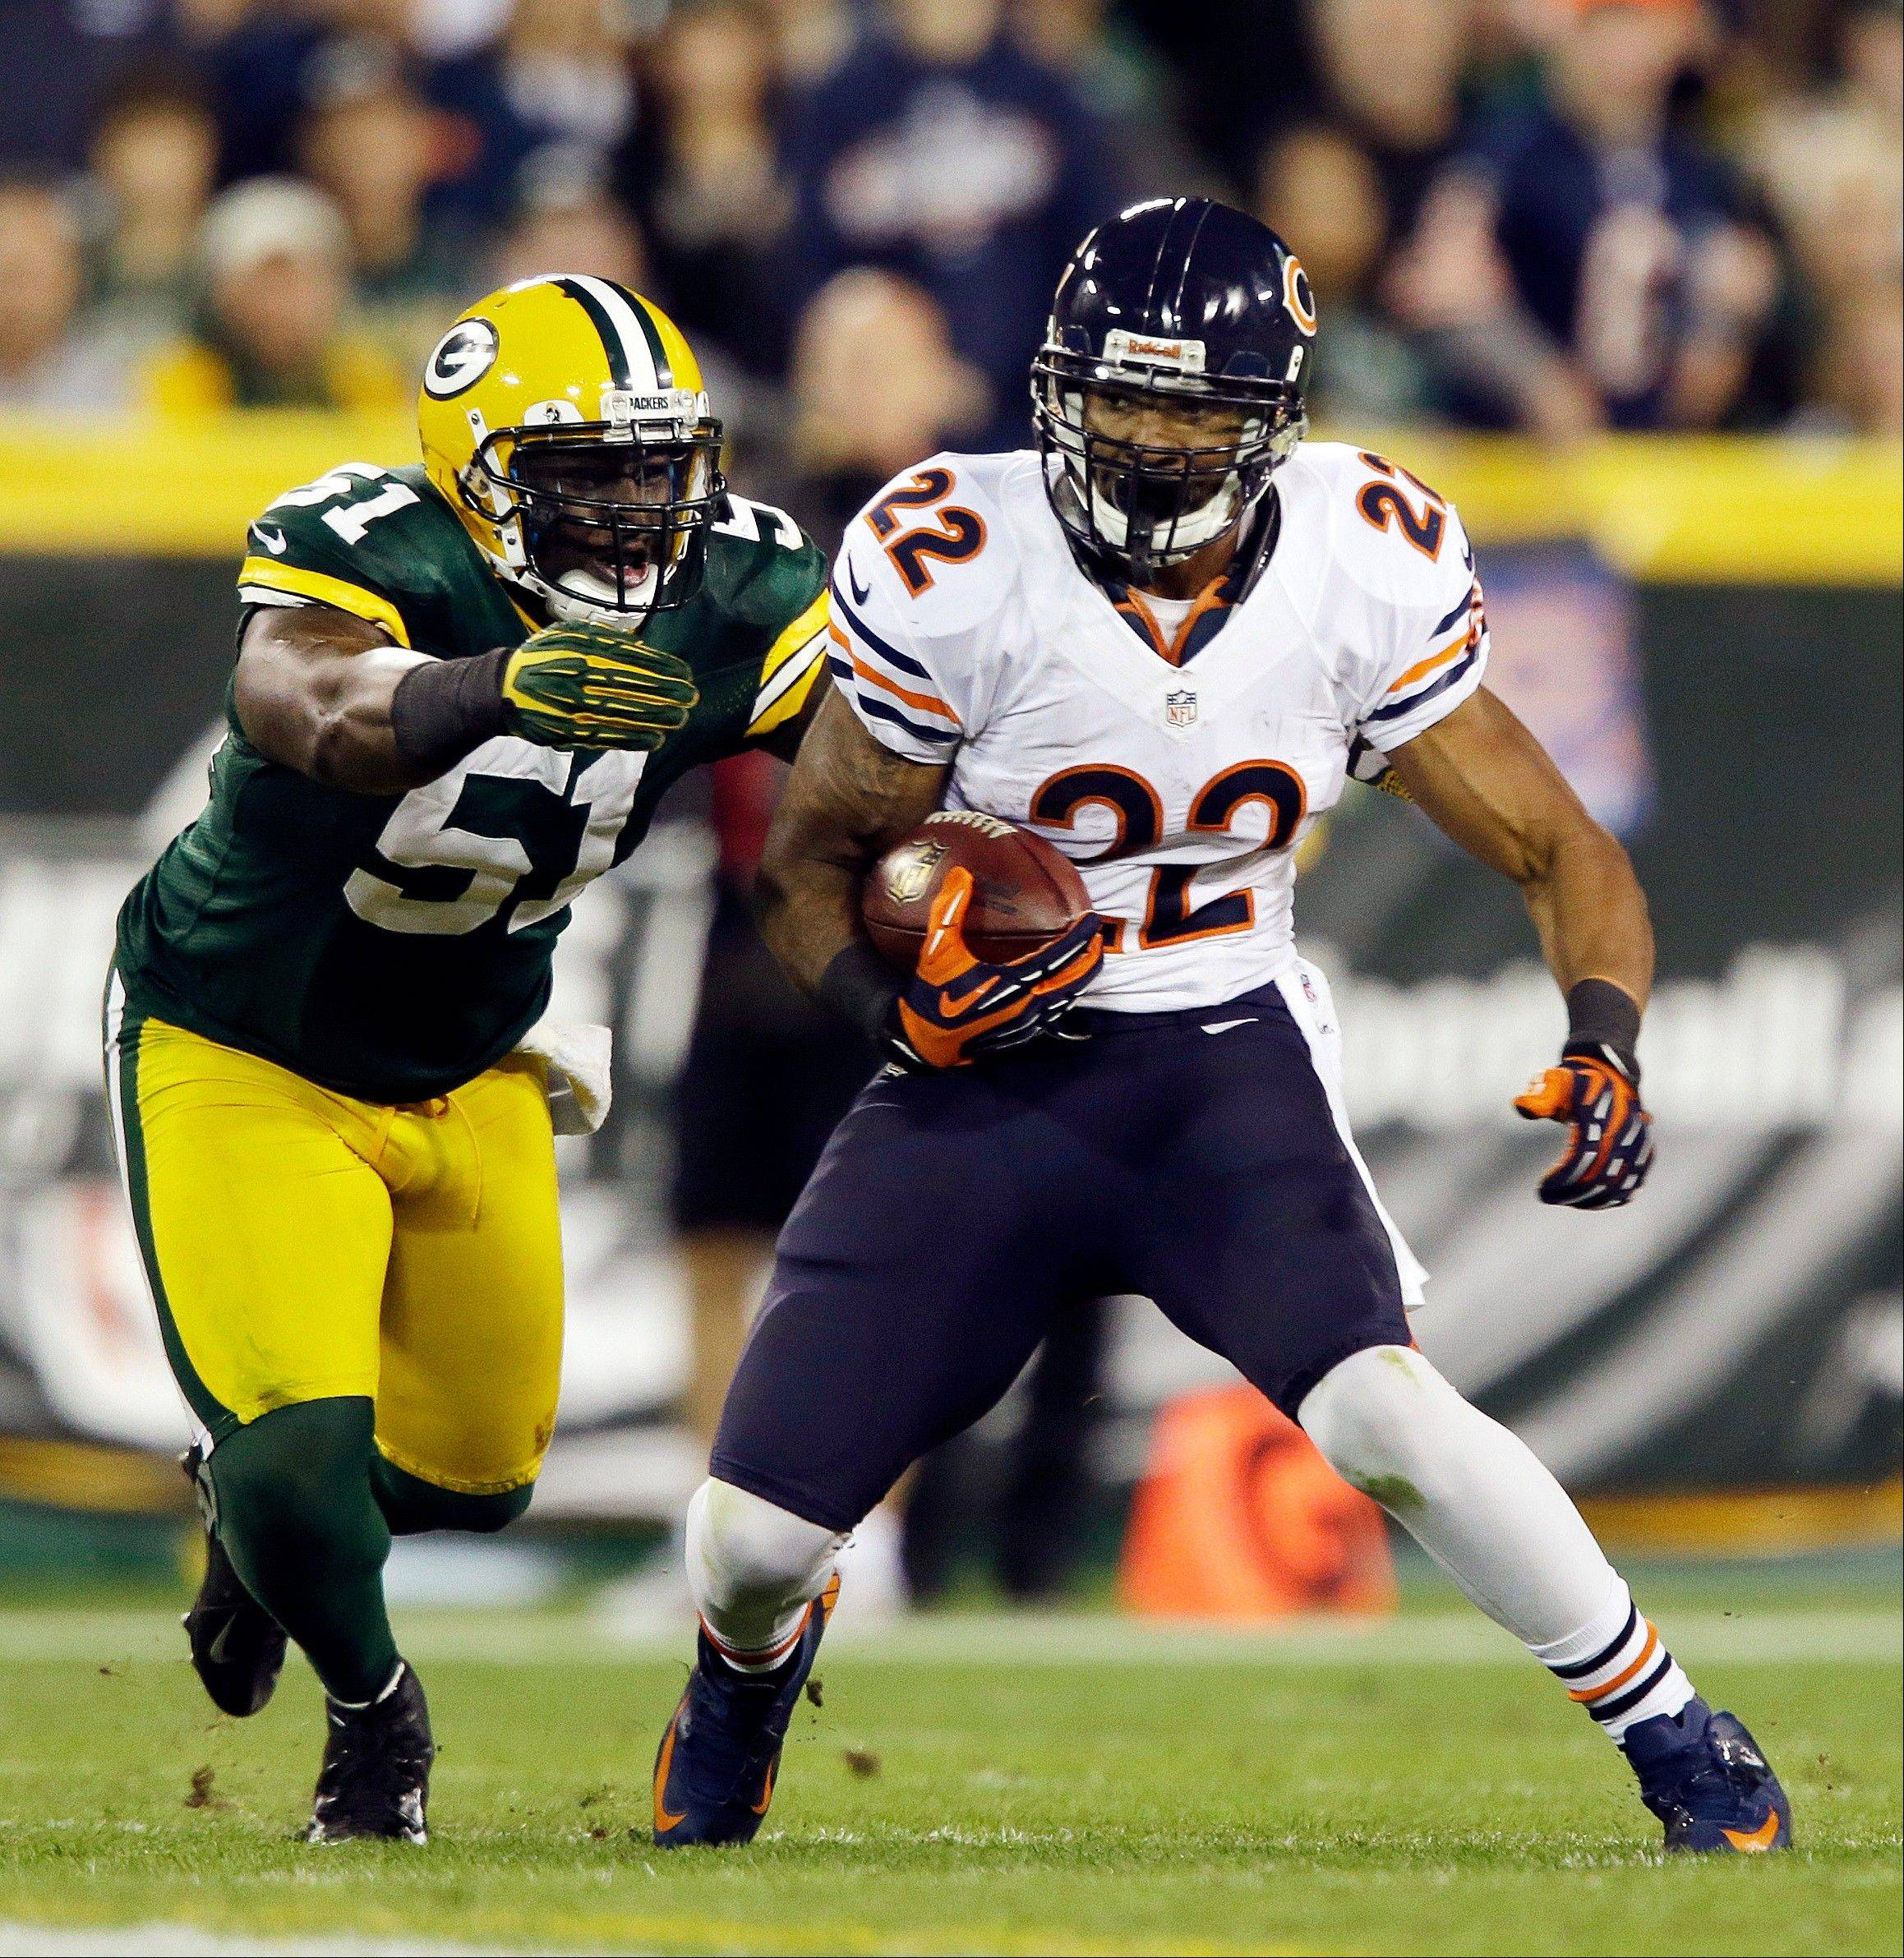 Bears RB Matt Forte (22) tries to break away from Green Bay's D.J. Smith when the teams met in September. Forte has averaged just 2.9 yards per carry since the Bears were 7-1.